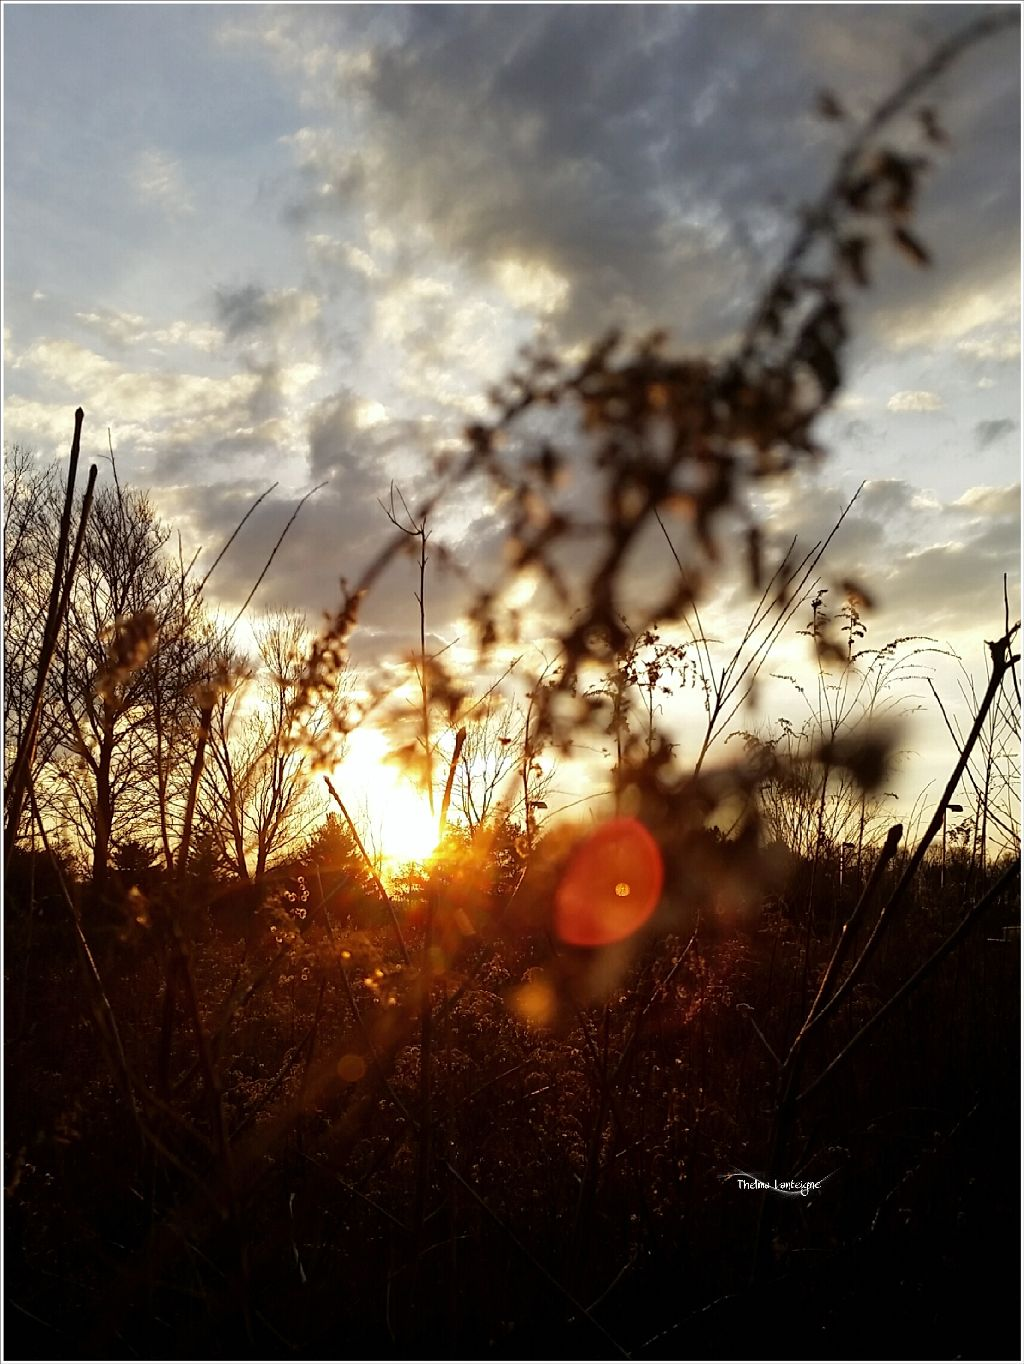 Good morning. Even in weeds there is beauty. #naturallensflare   #sunset #nofilter #nature #intothesun natural #lensflare #sky #clouds #border